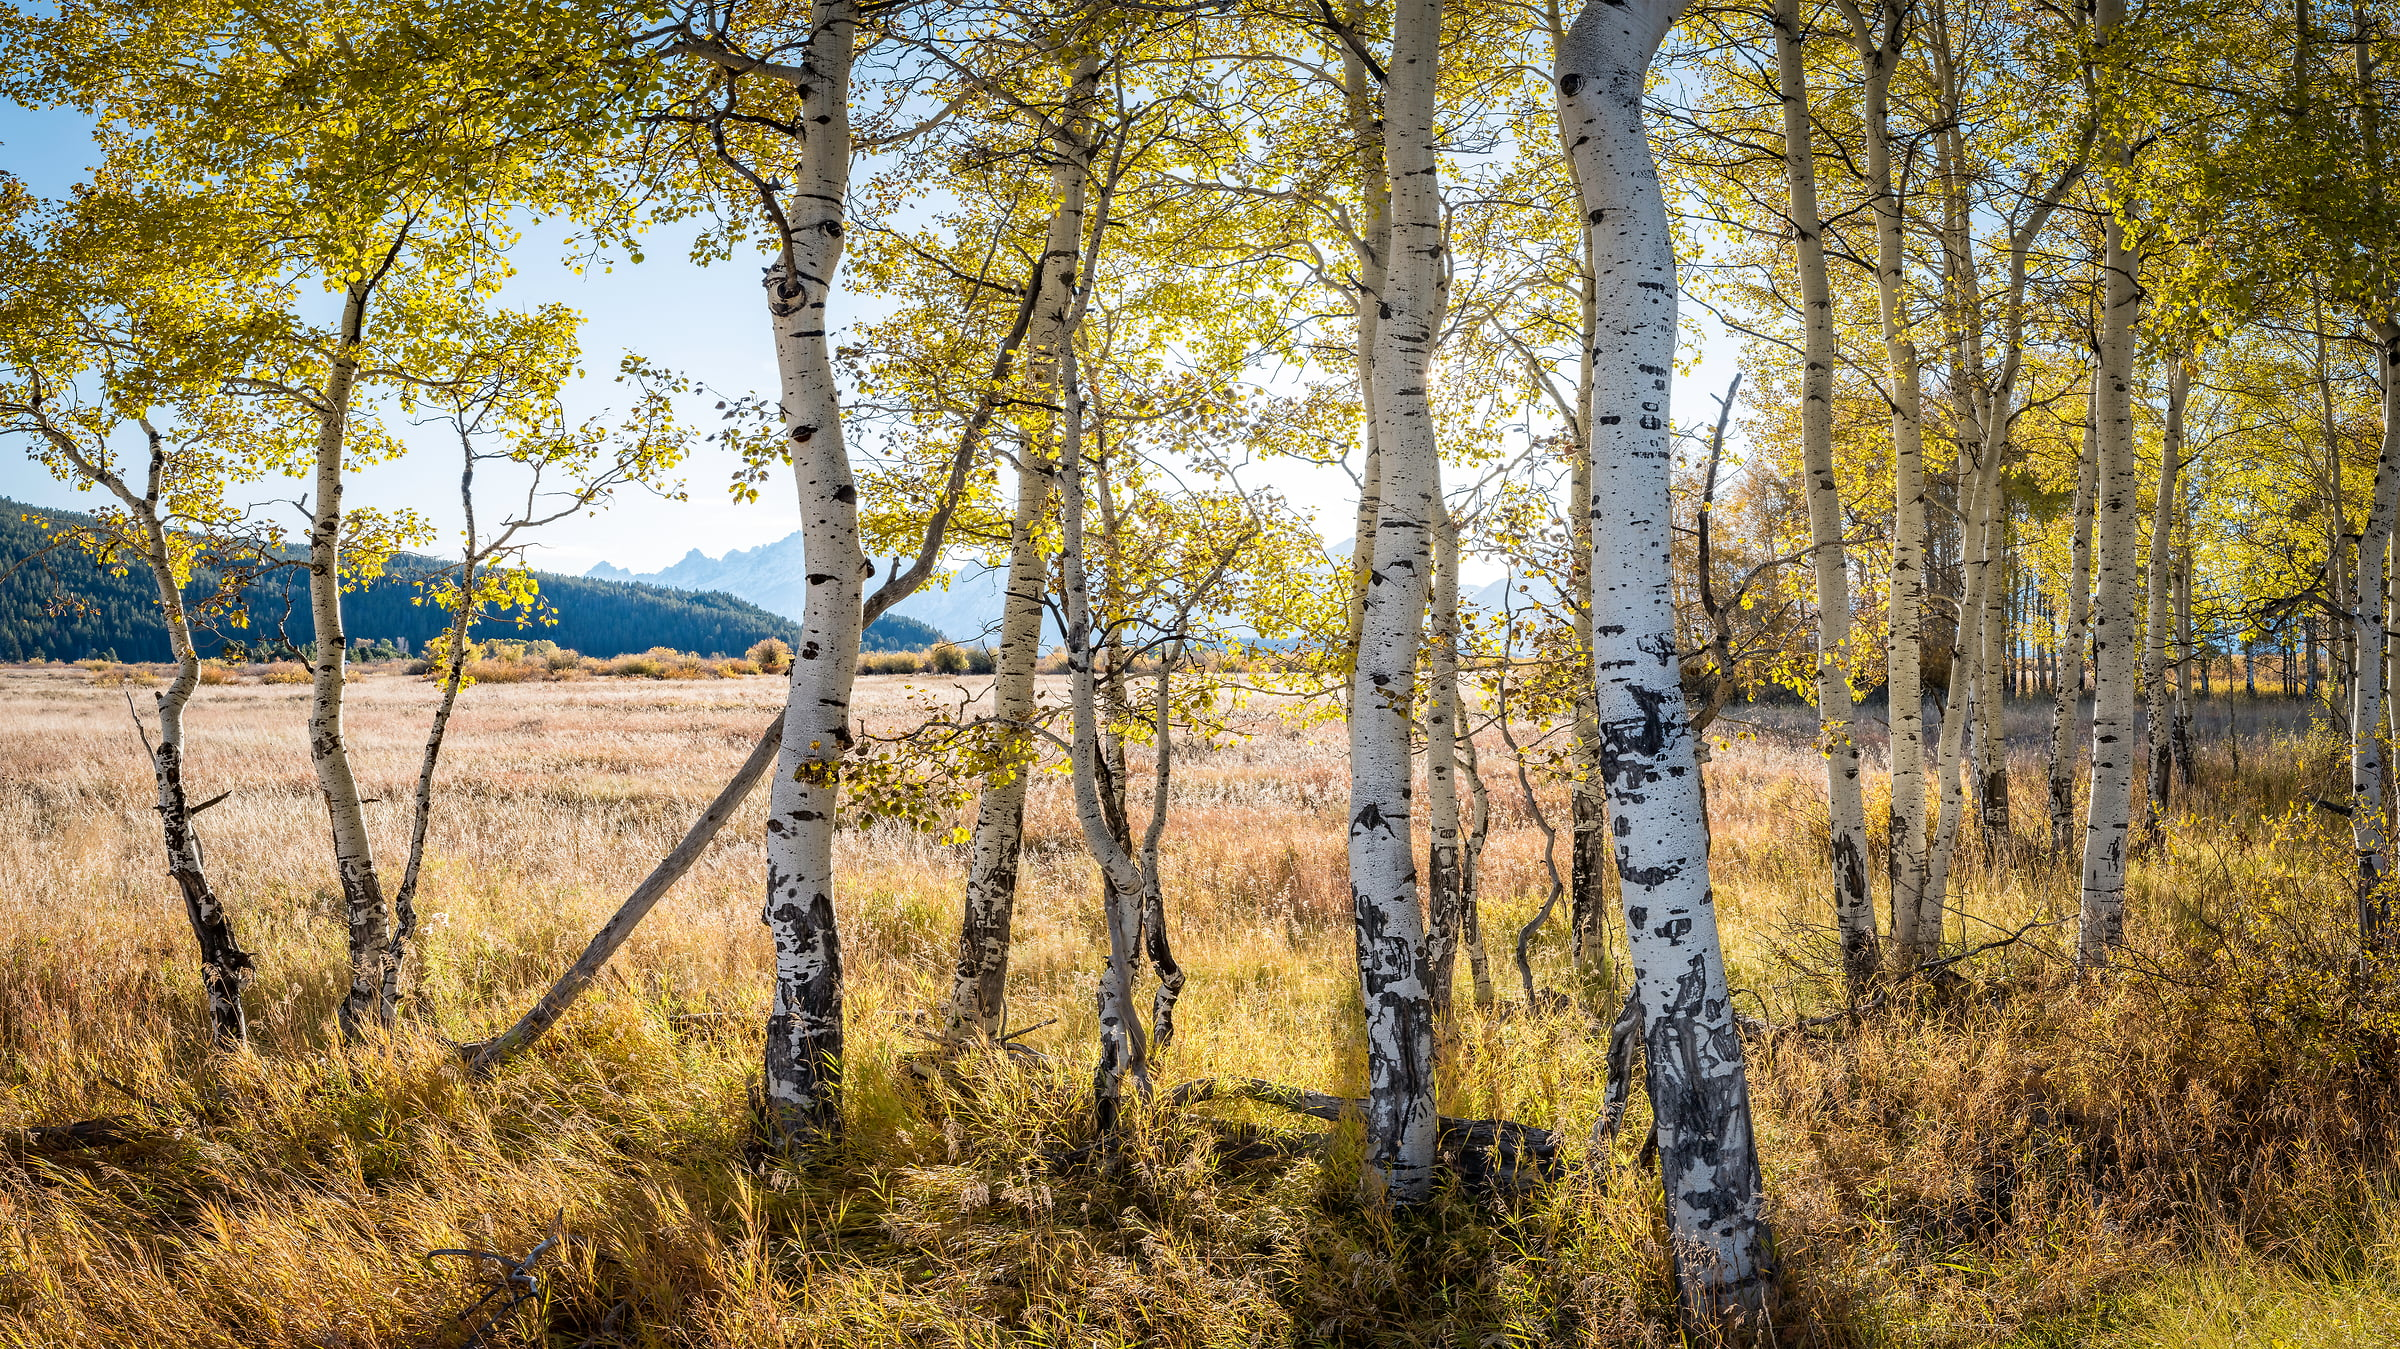 303 megapixels! A very high resolution nature wallpaper of a grove of aspen trees; VAST photo of nature created by Justin Katz in Grand Teton National Park, Wyoming